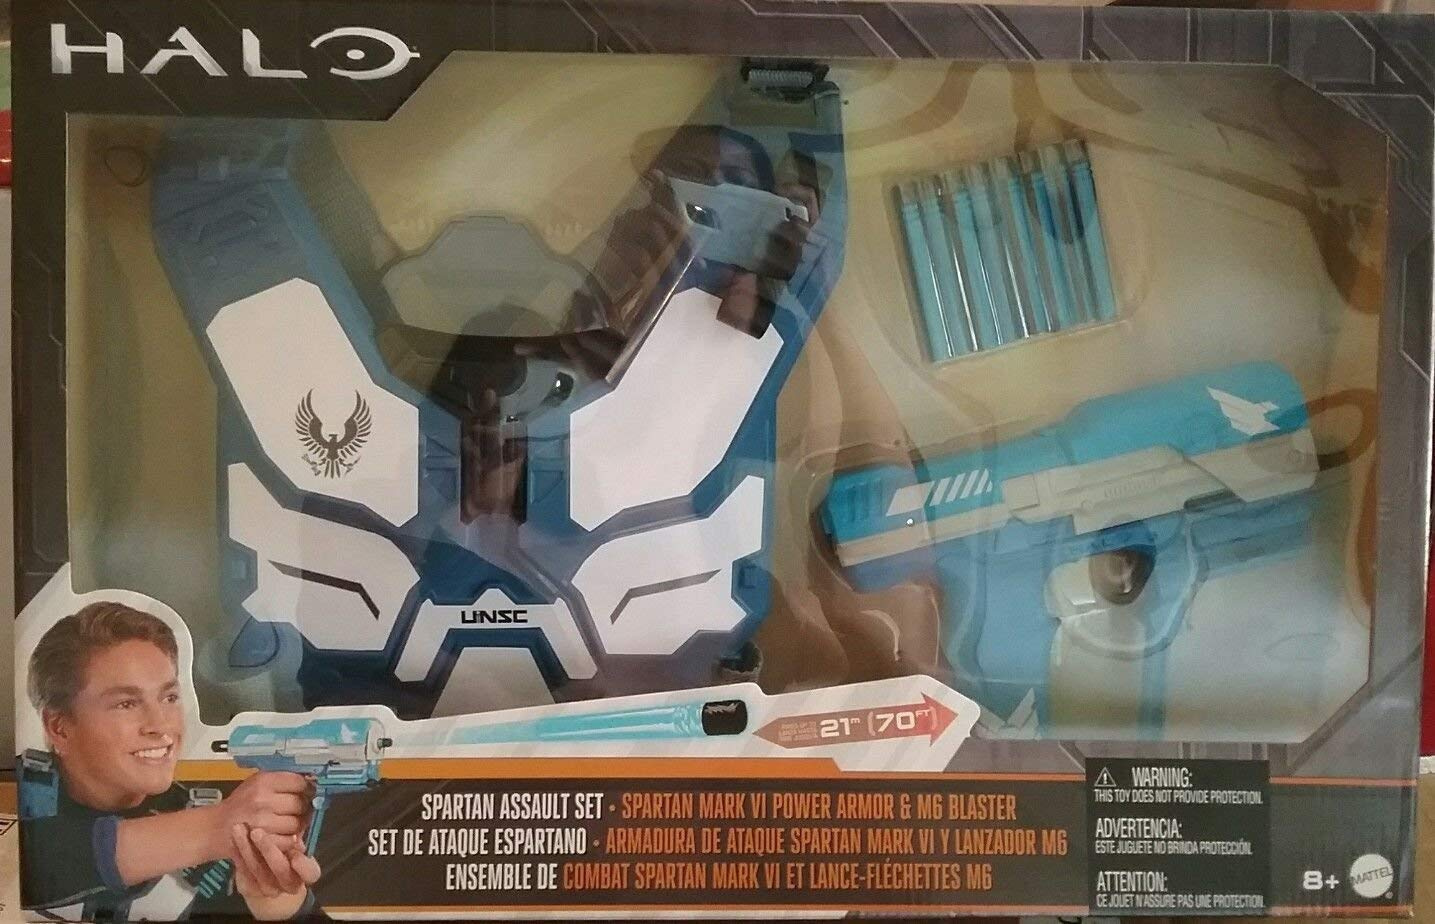 RED NEW BoomCo HALO UNSC Spartan Assault Armor Pack Battle Gear Set